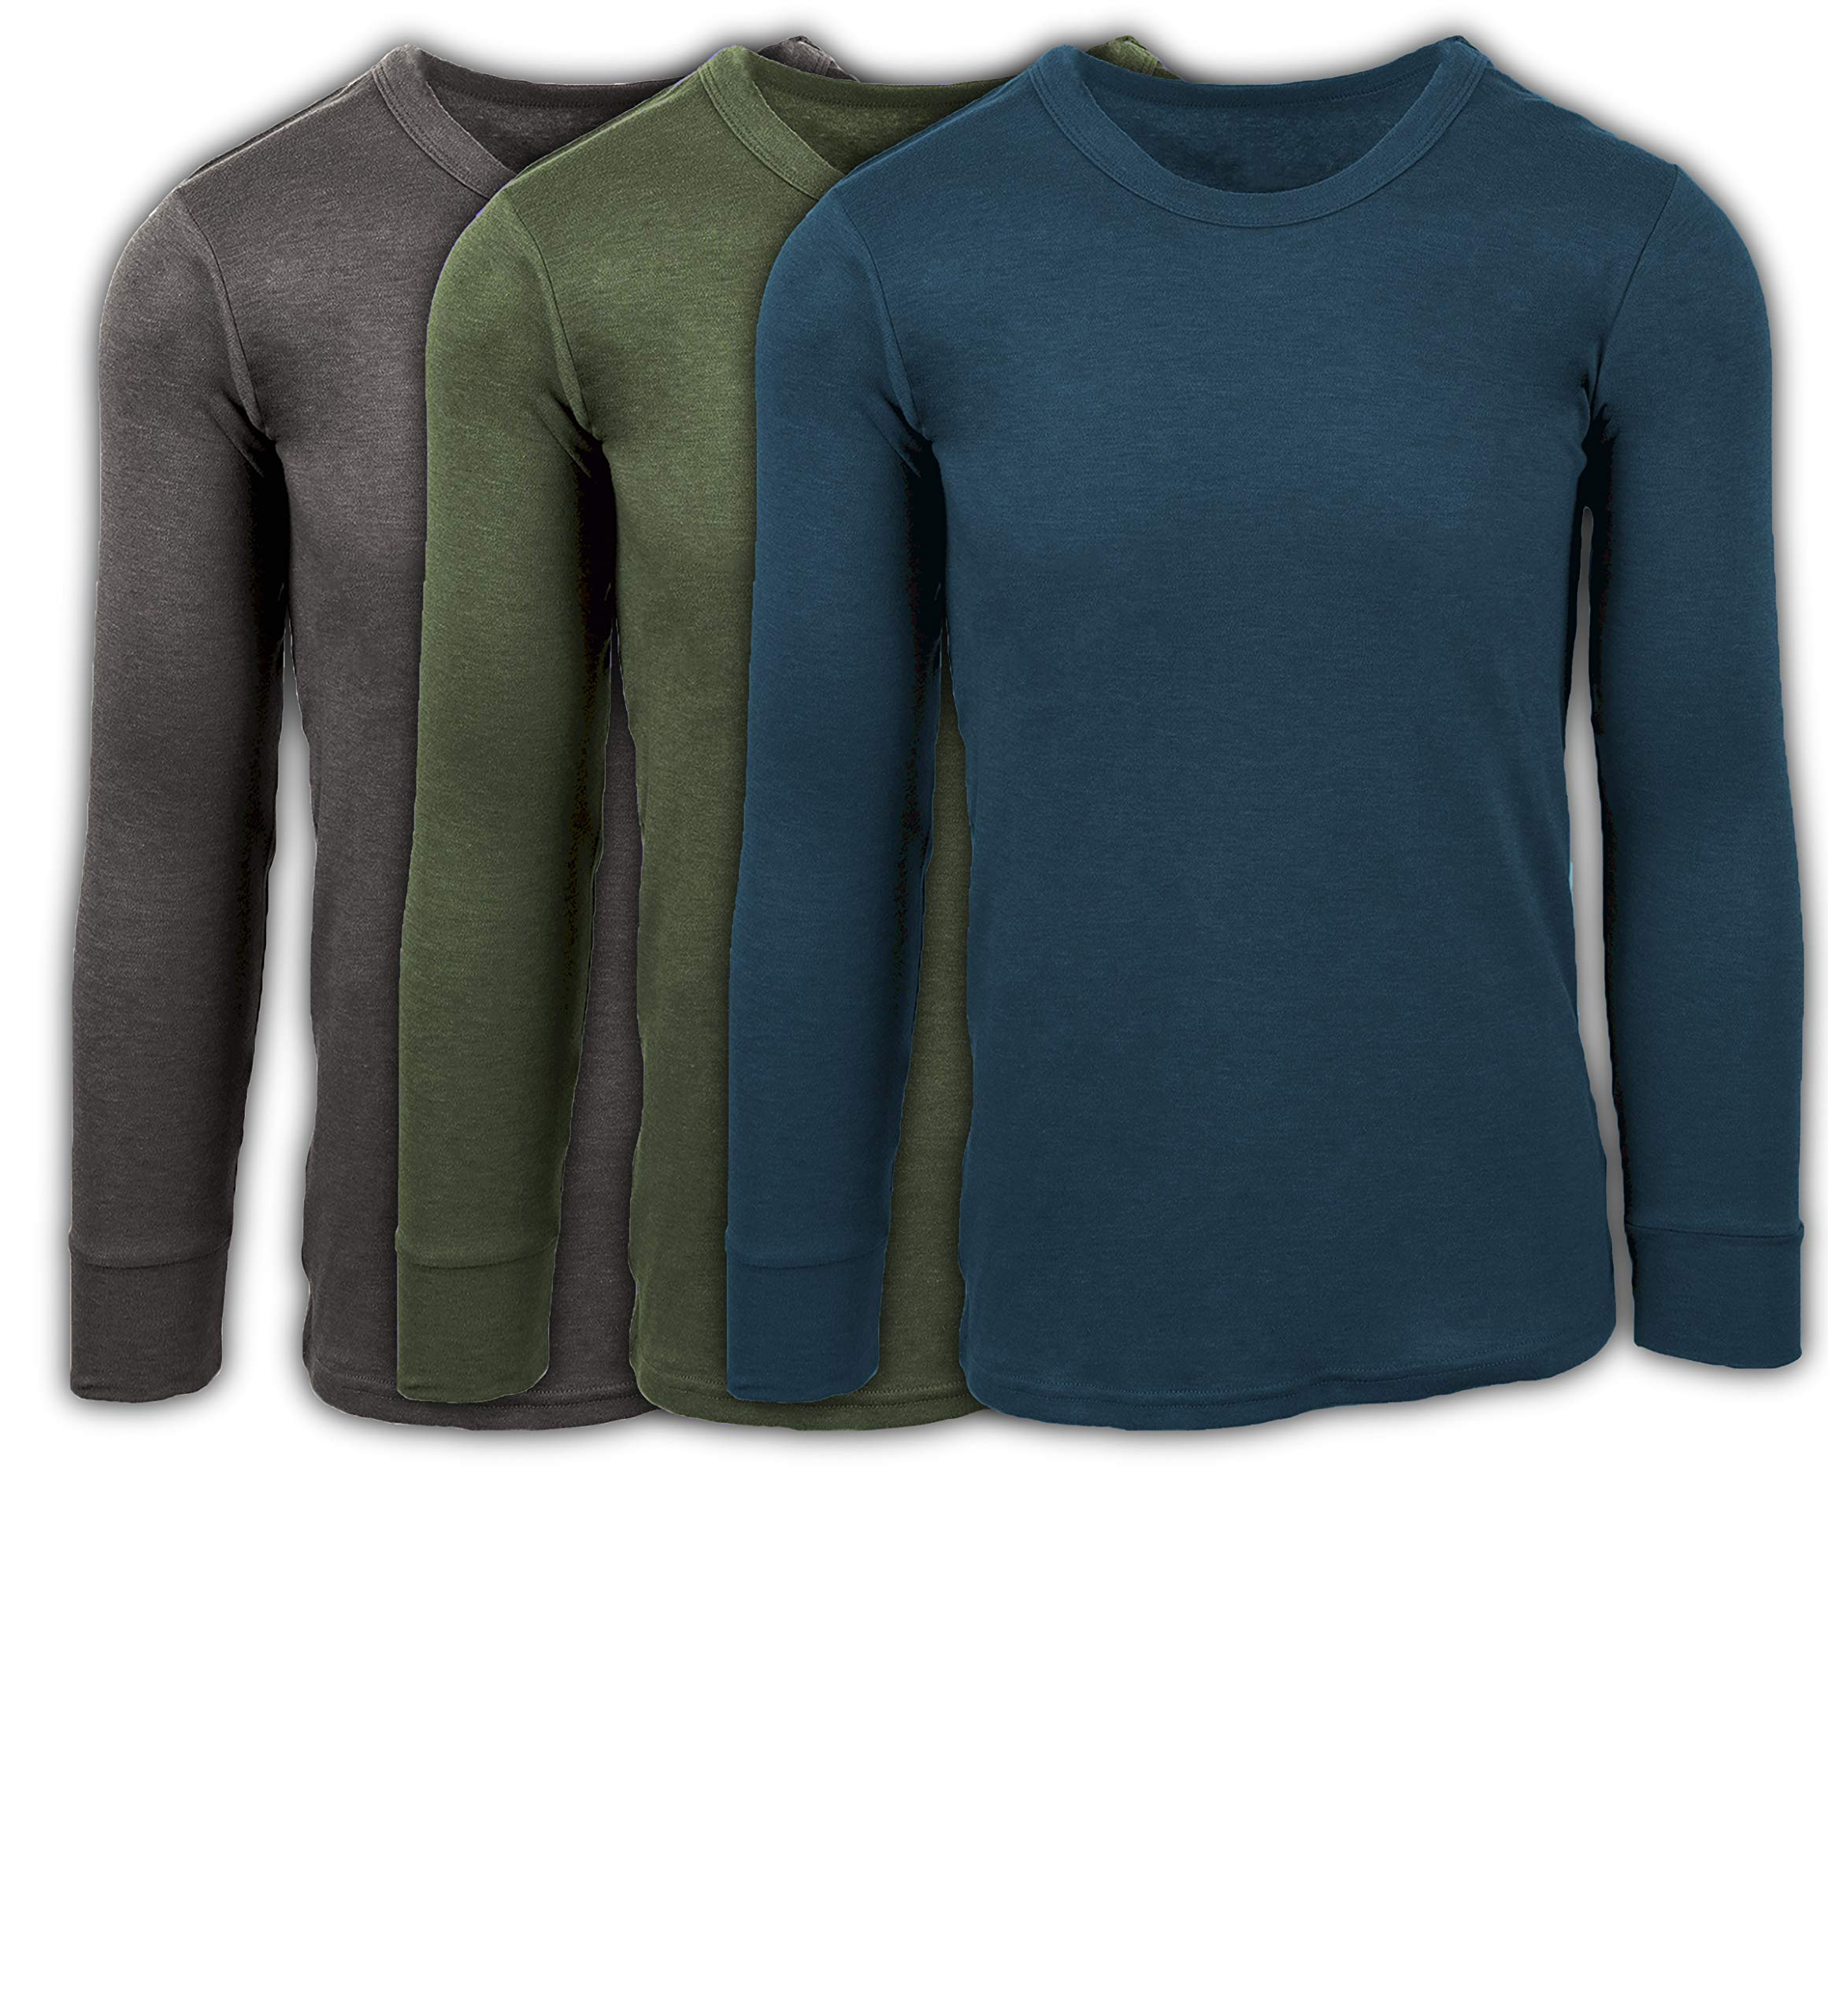 Andrew Scott Men's 3 Pack Premium Cotton Thermal Top Base Layer Long Sleeve Crew Neck Shirt (XX-Large, 3 Pack- Charcoal/Olive/Legion Blue) by Andrew Scott